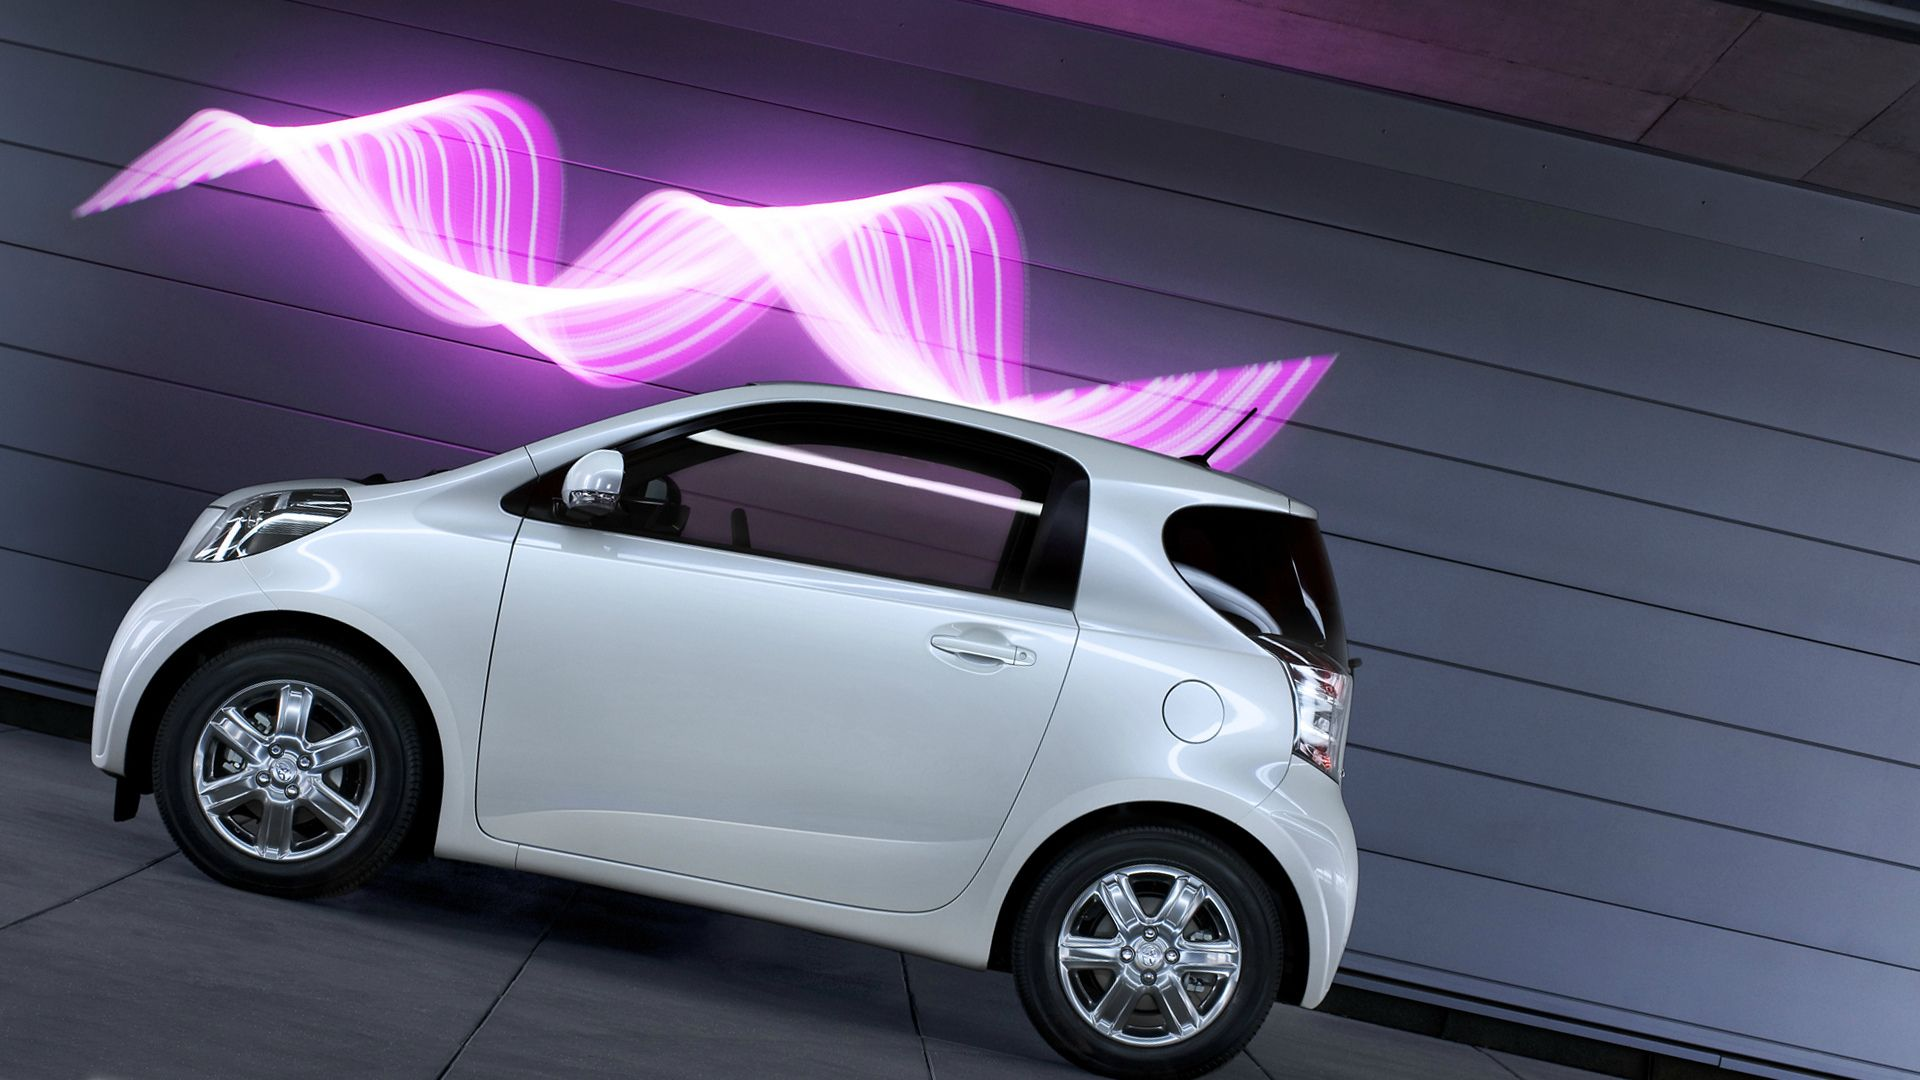 New 2019 Toyota iQ First Pictures Scion, Scion xd, First